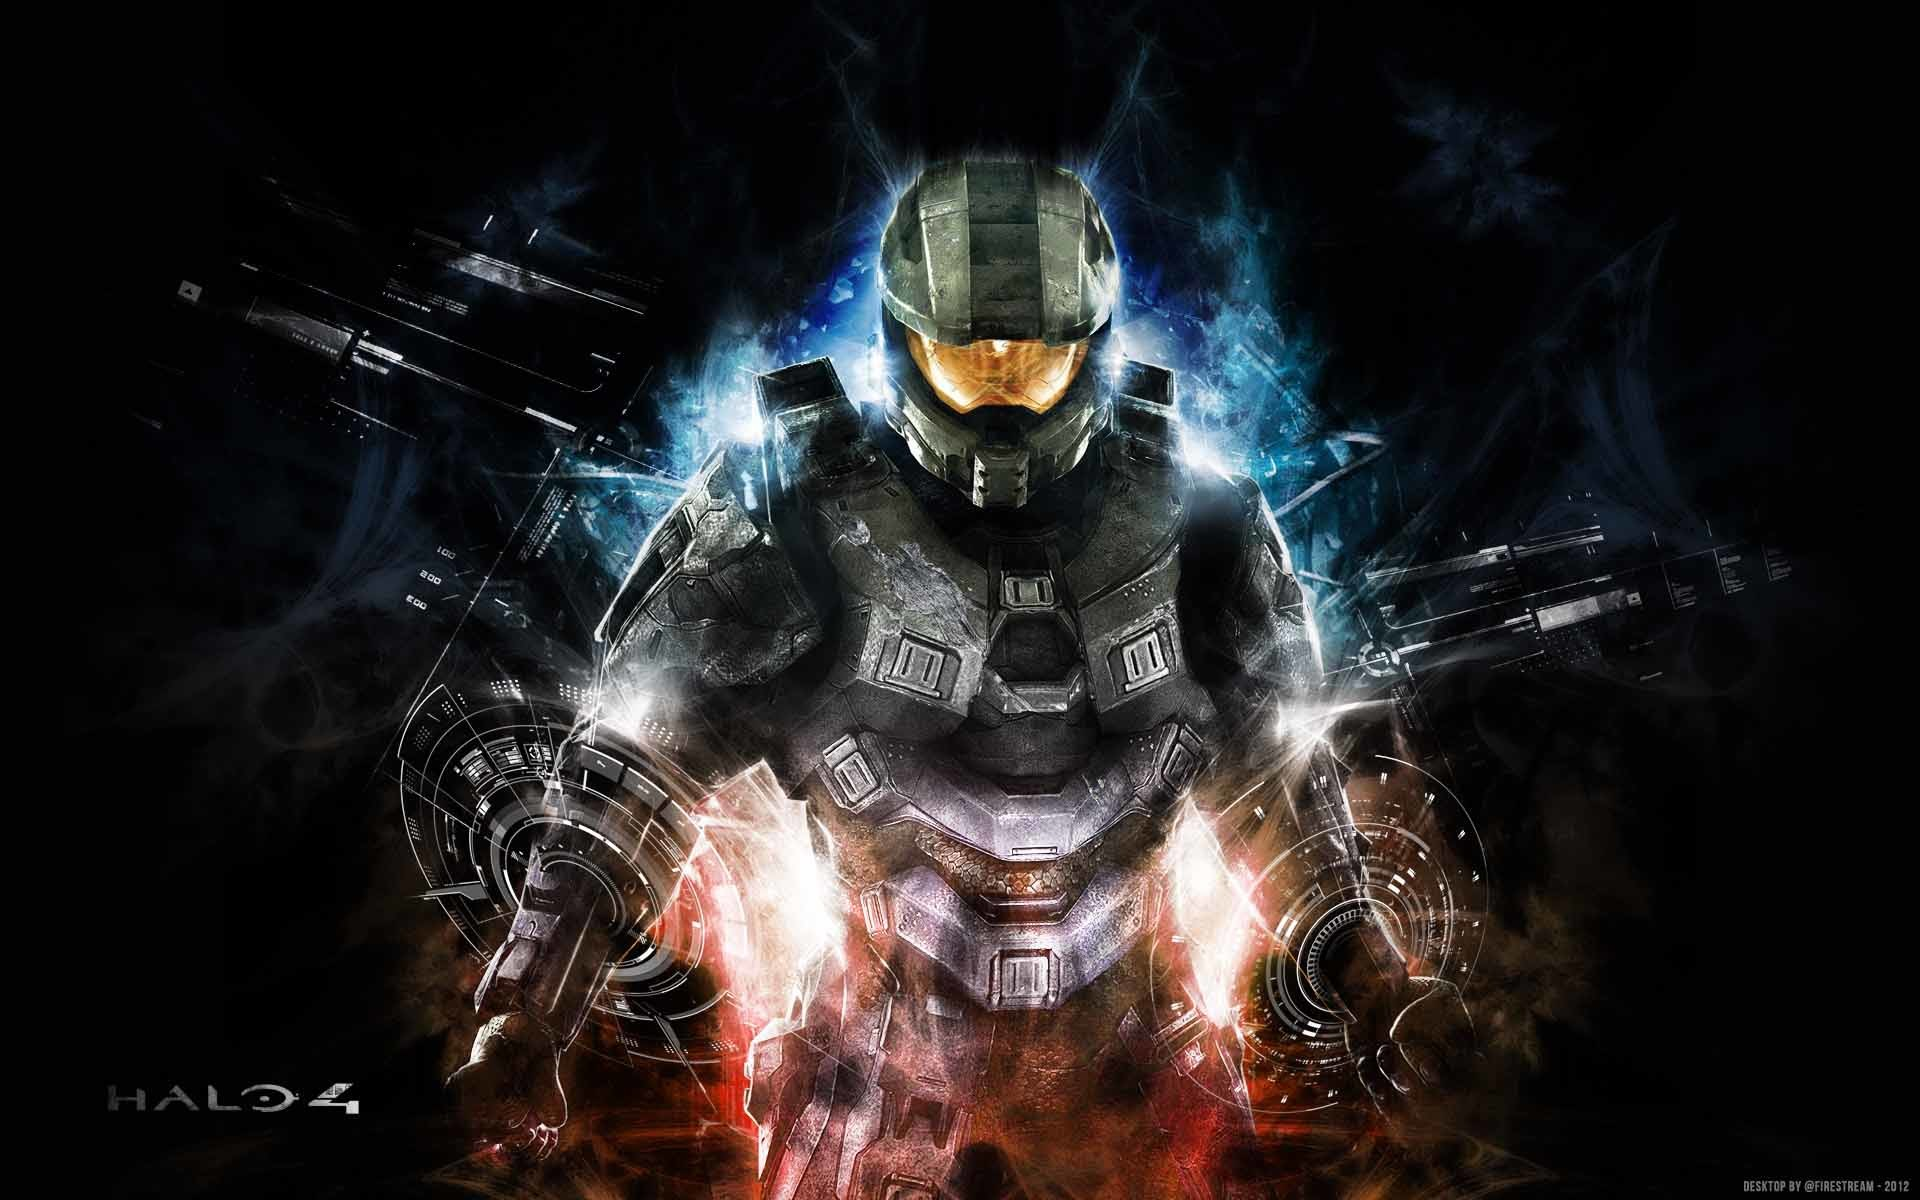 1920x1200 Halo Wallpapers 1080p | wallpaper, wallpaper hd, background desktop